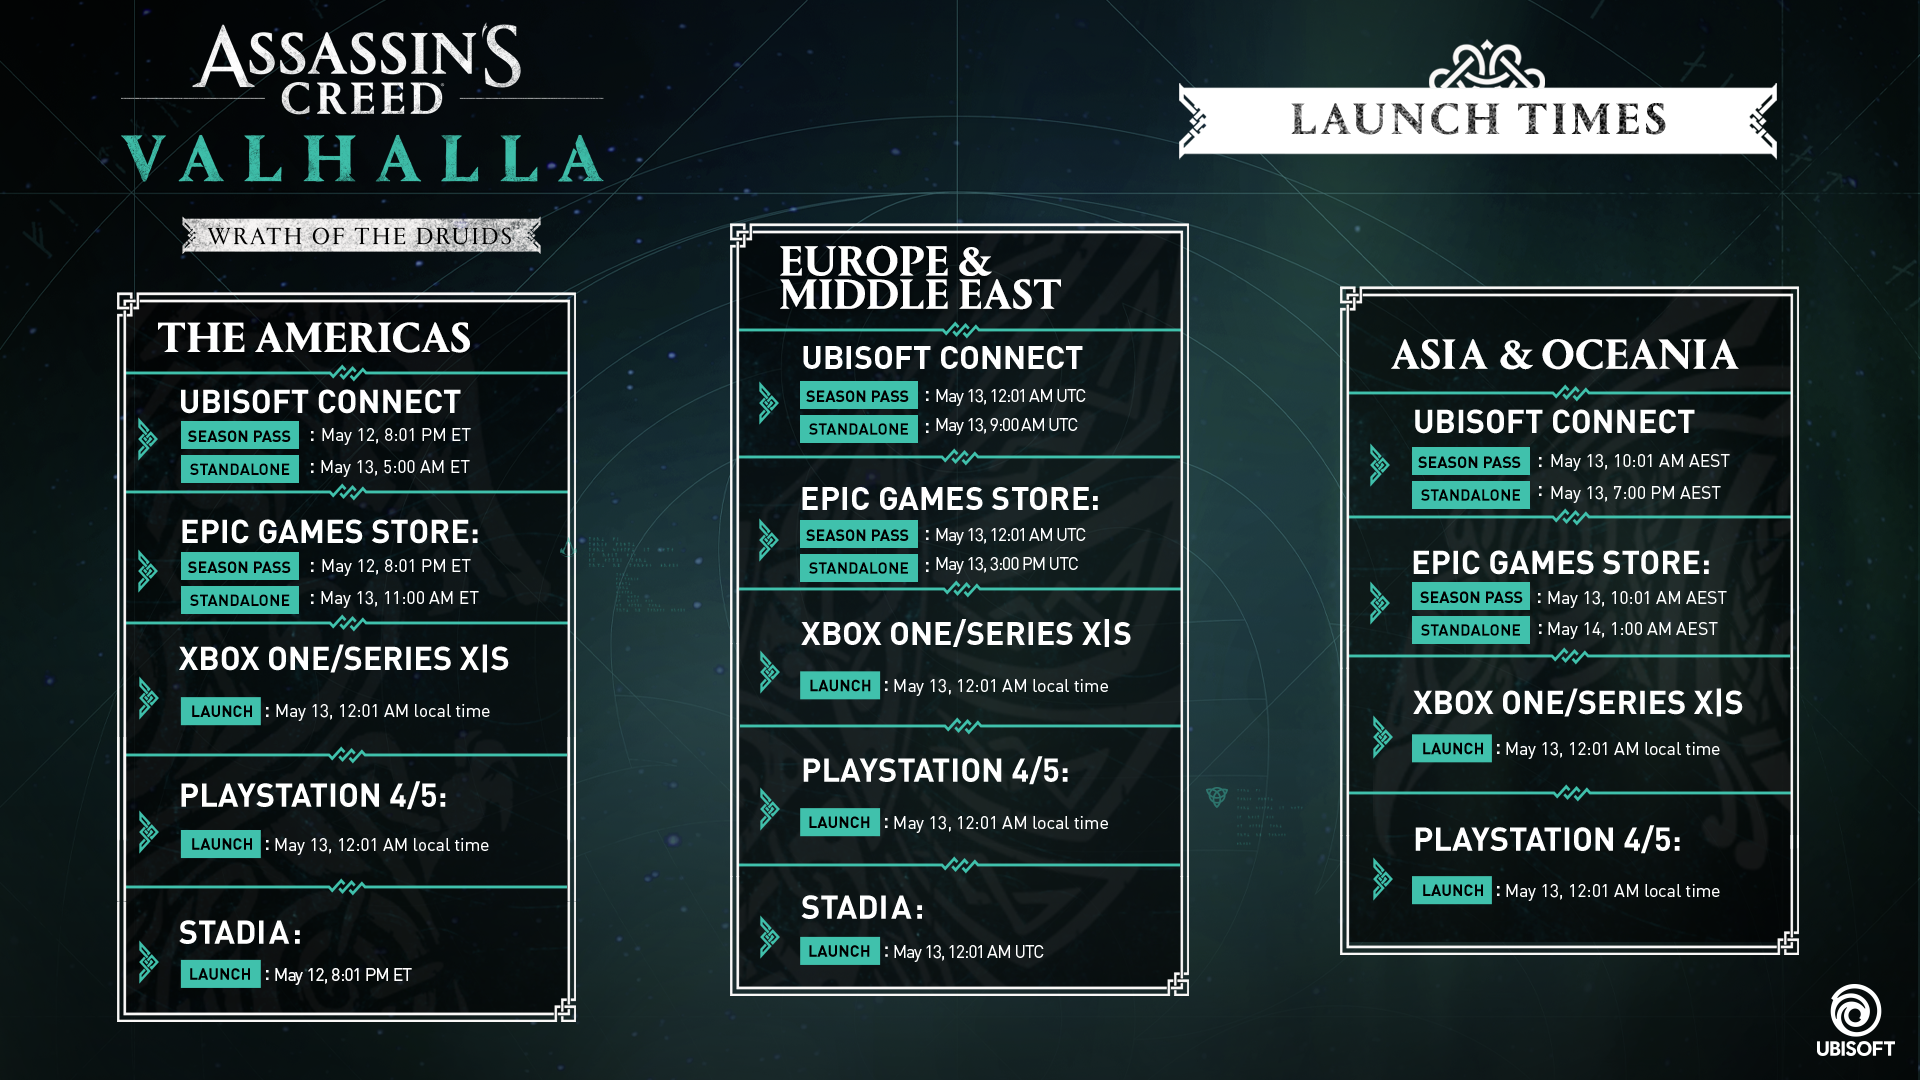 ACV_WOTD_launchmap-UPDATE_v3.png